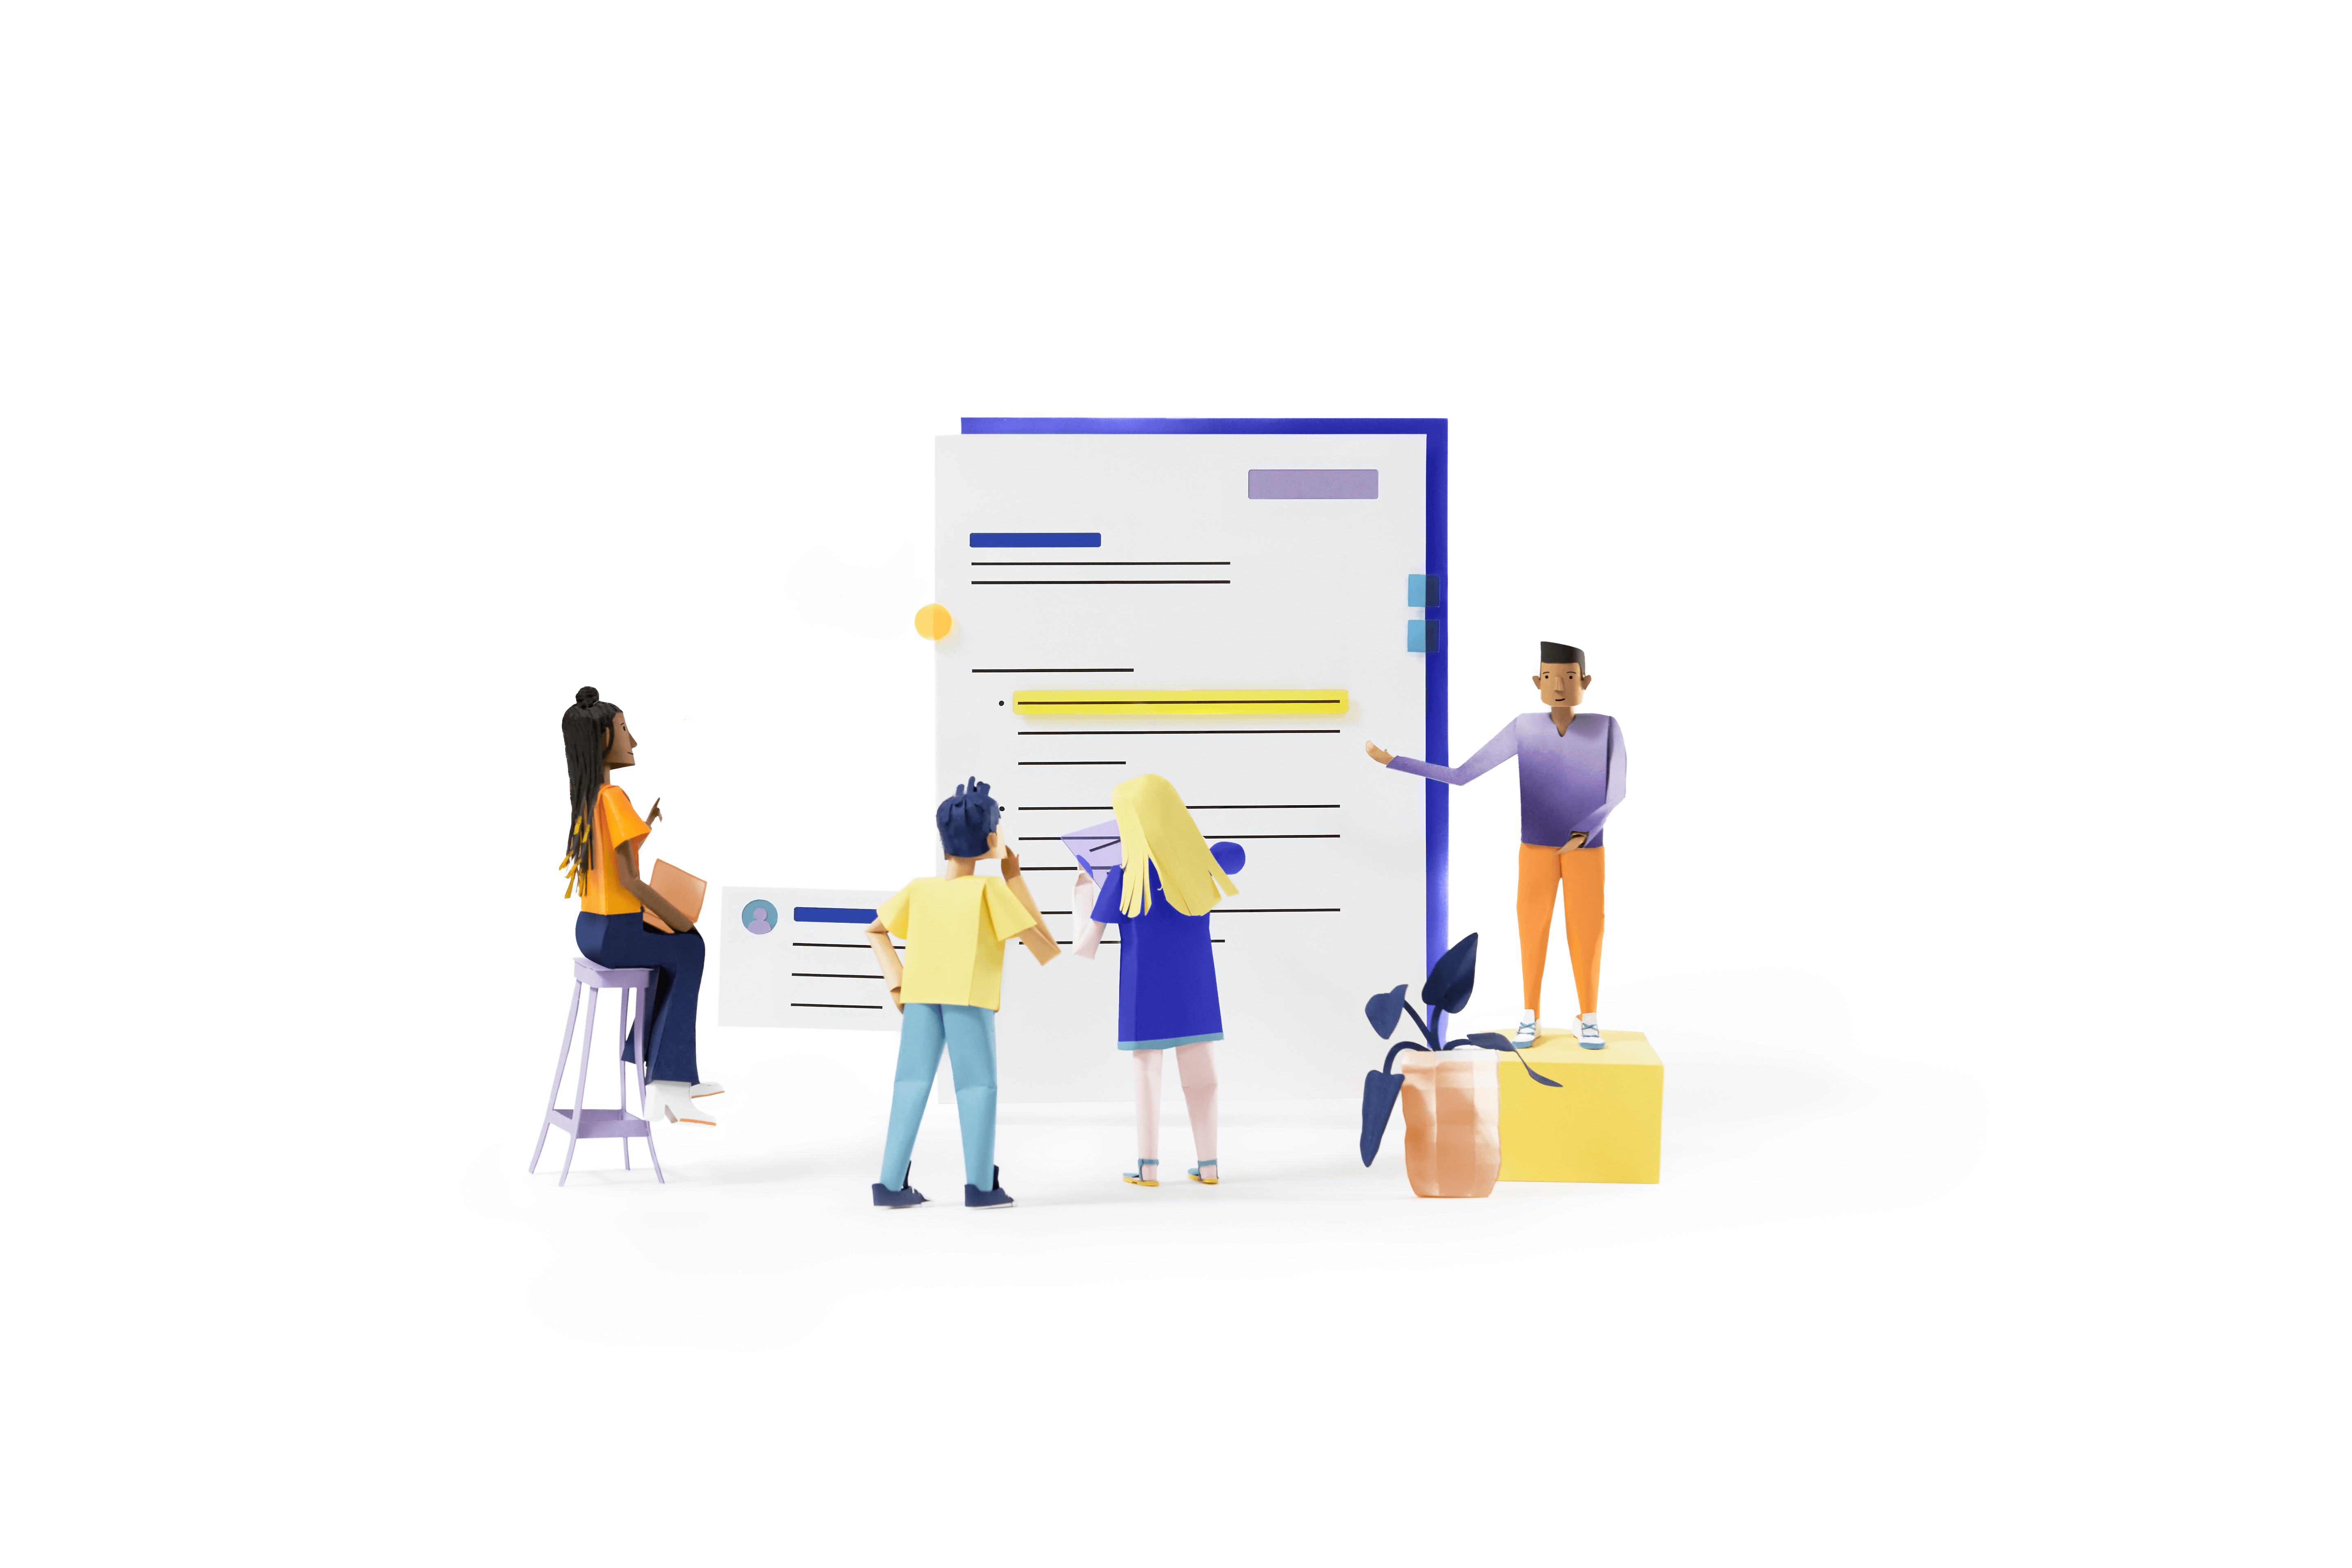 Paper illustration of 4 coworkers discussing a document